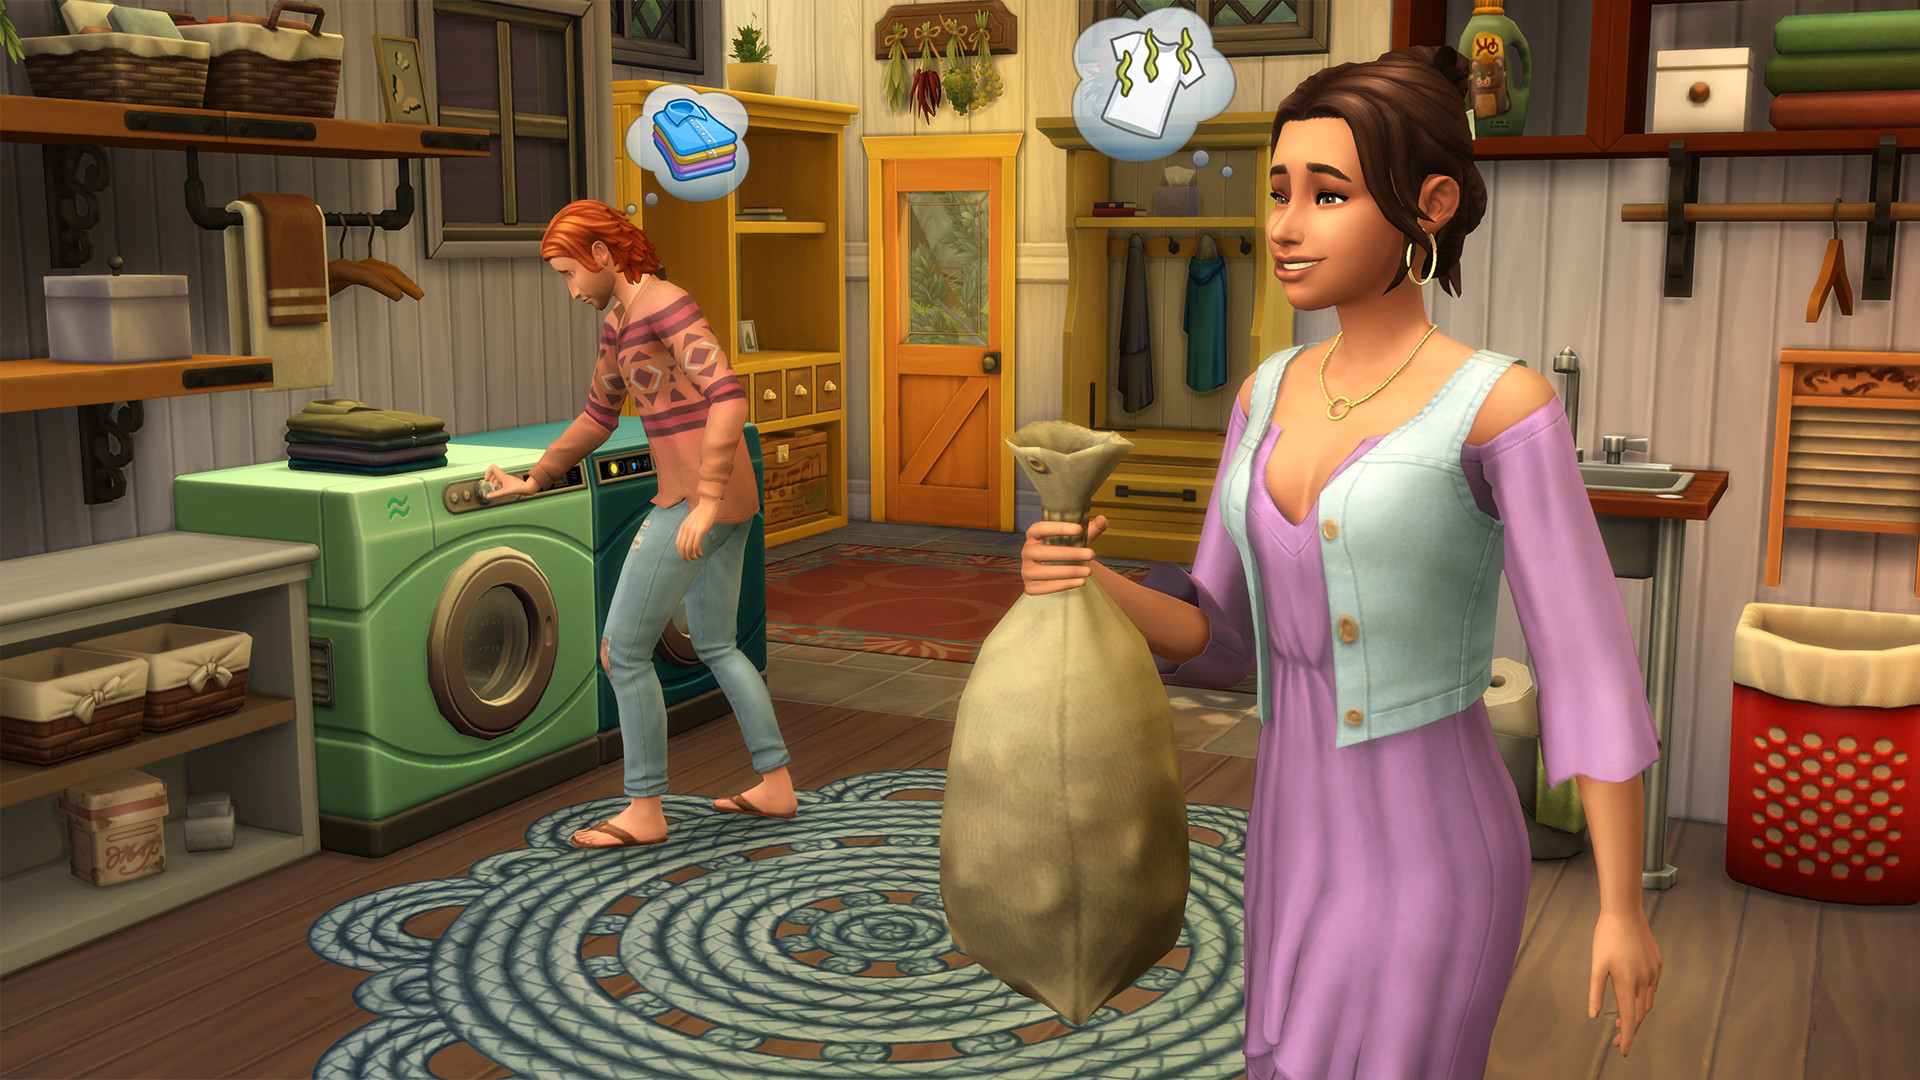 The Sims 4 Laundry Day Stuff Official Game Description